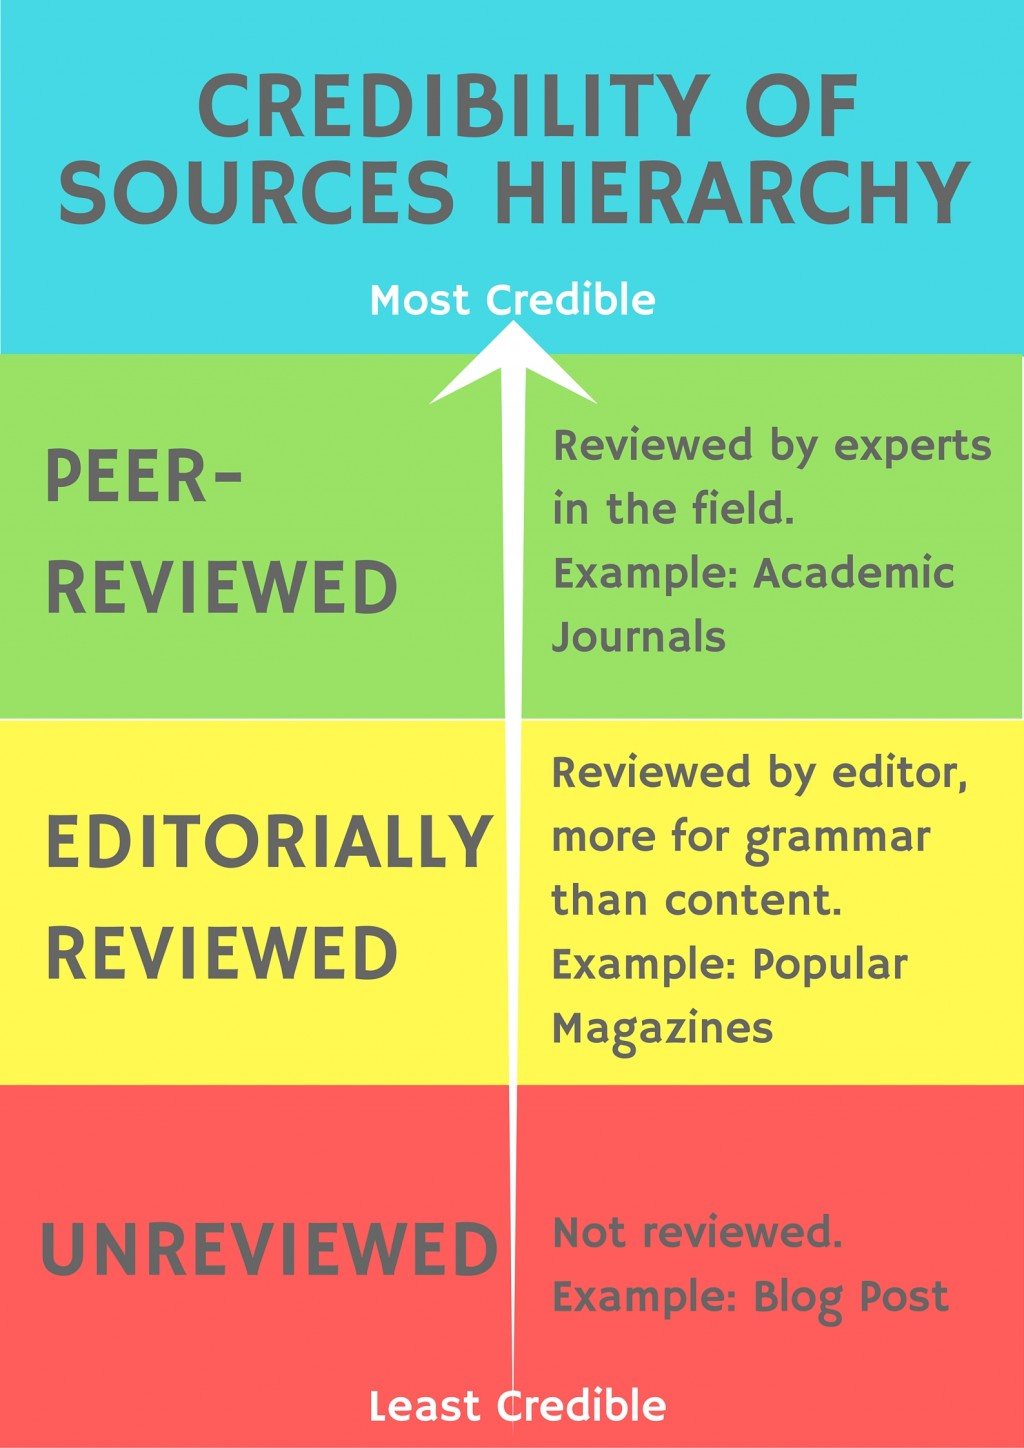 003 Final Credibility Of Sources Hierarchy Credible Websites For Researchs Best Research Papers Large